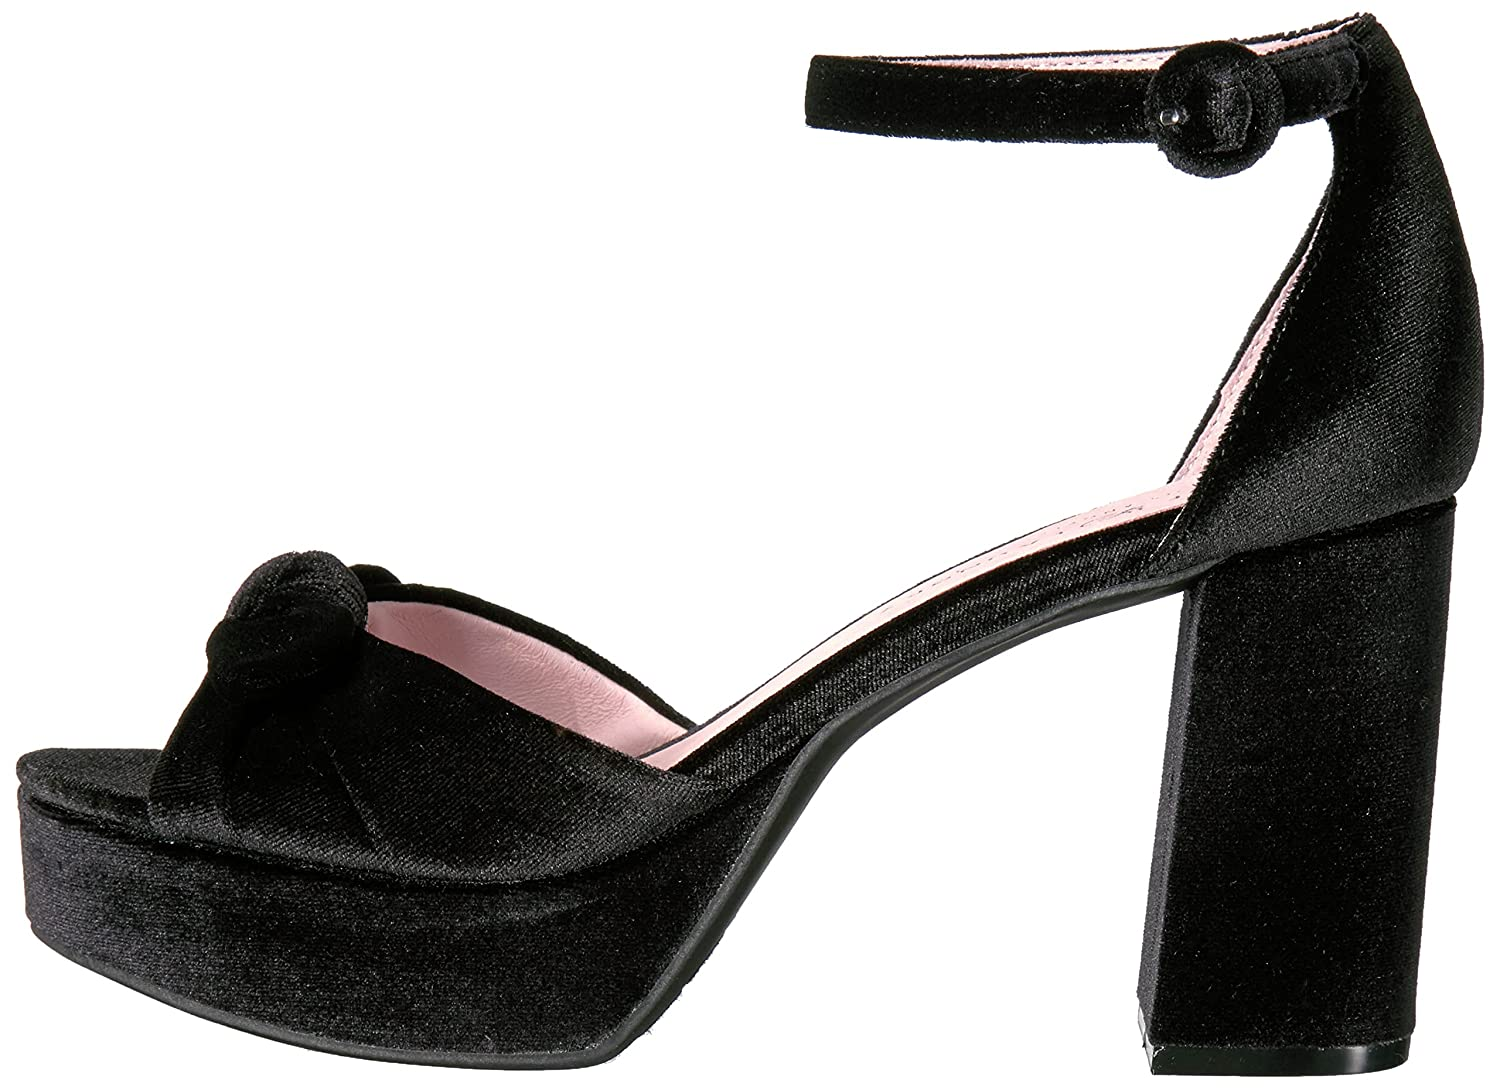 Chinese Women's Laundry Women's Chinese Tina Platform Dress Sandal 5 M US|Black Velvet B01MCTY8L5 1ac920